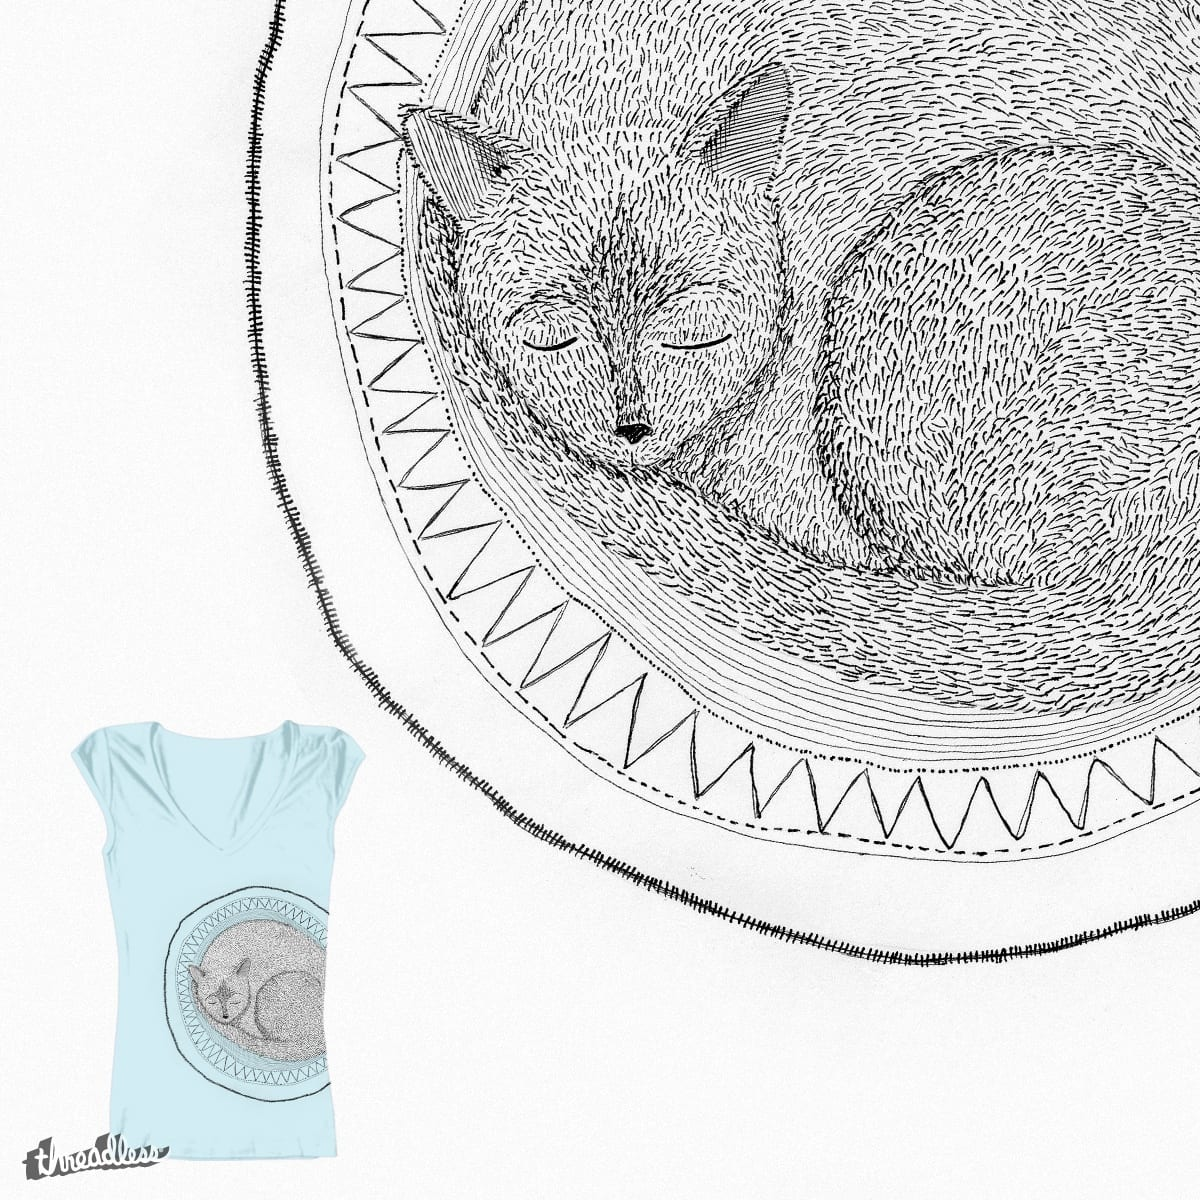 Everyone loves naps by sabripio on Threadless